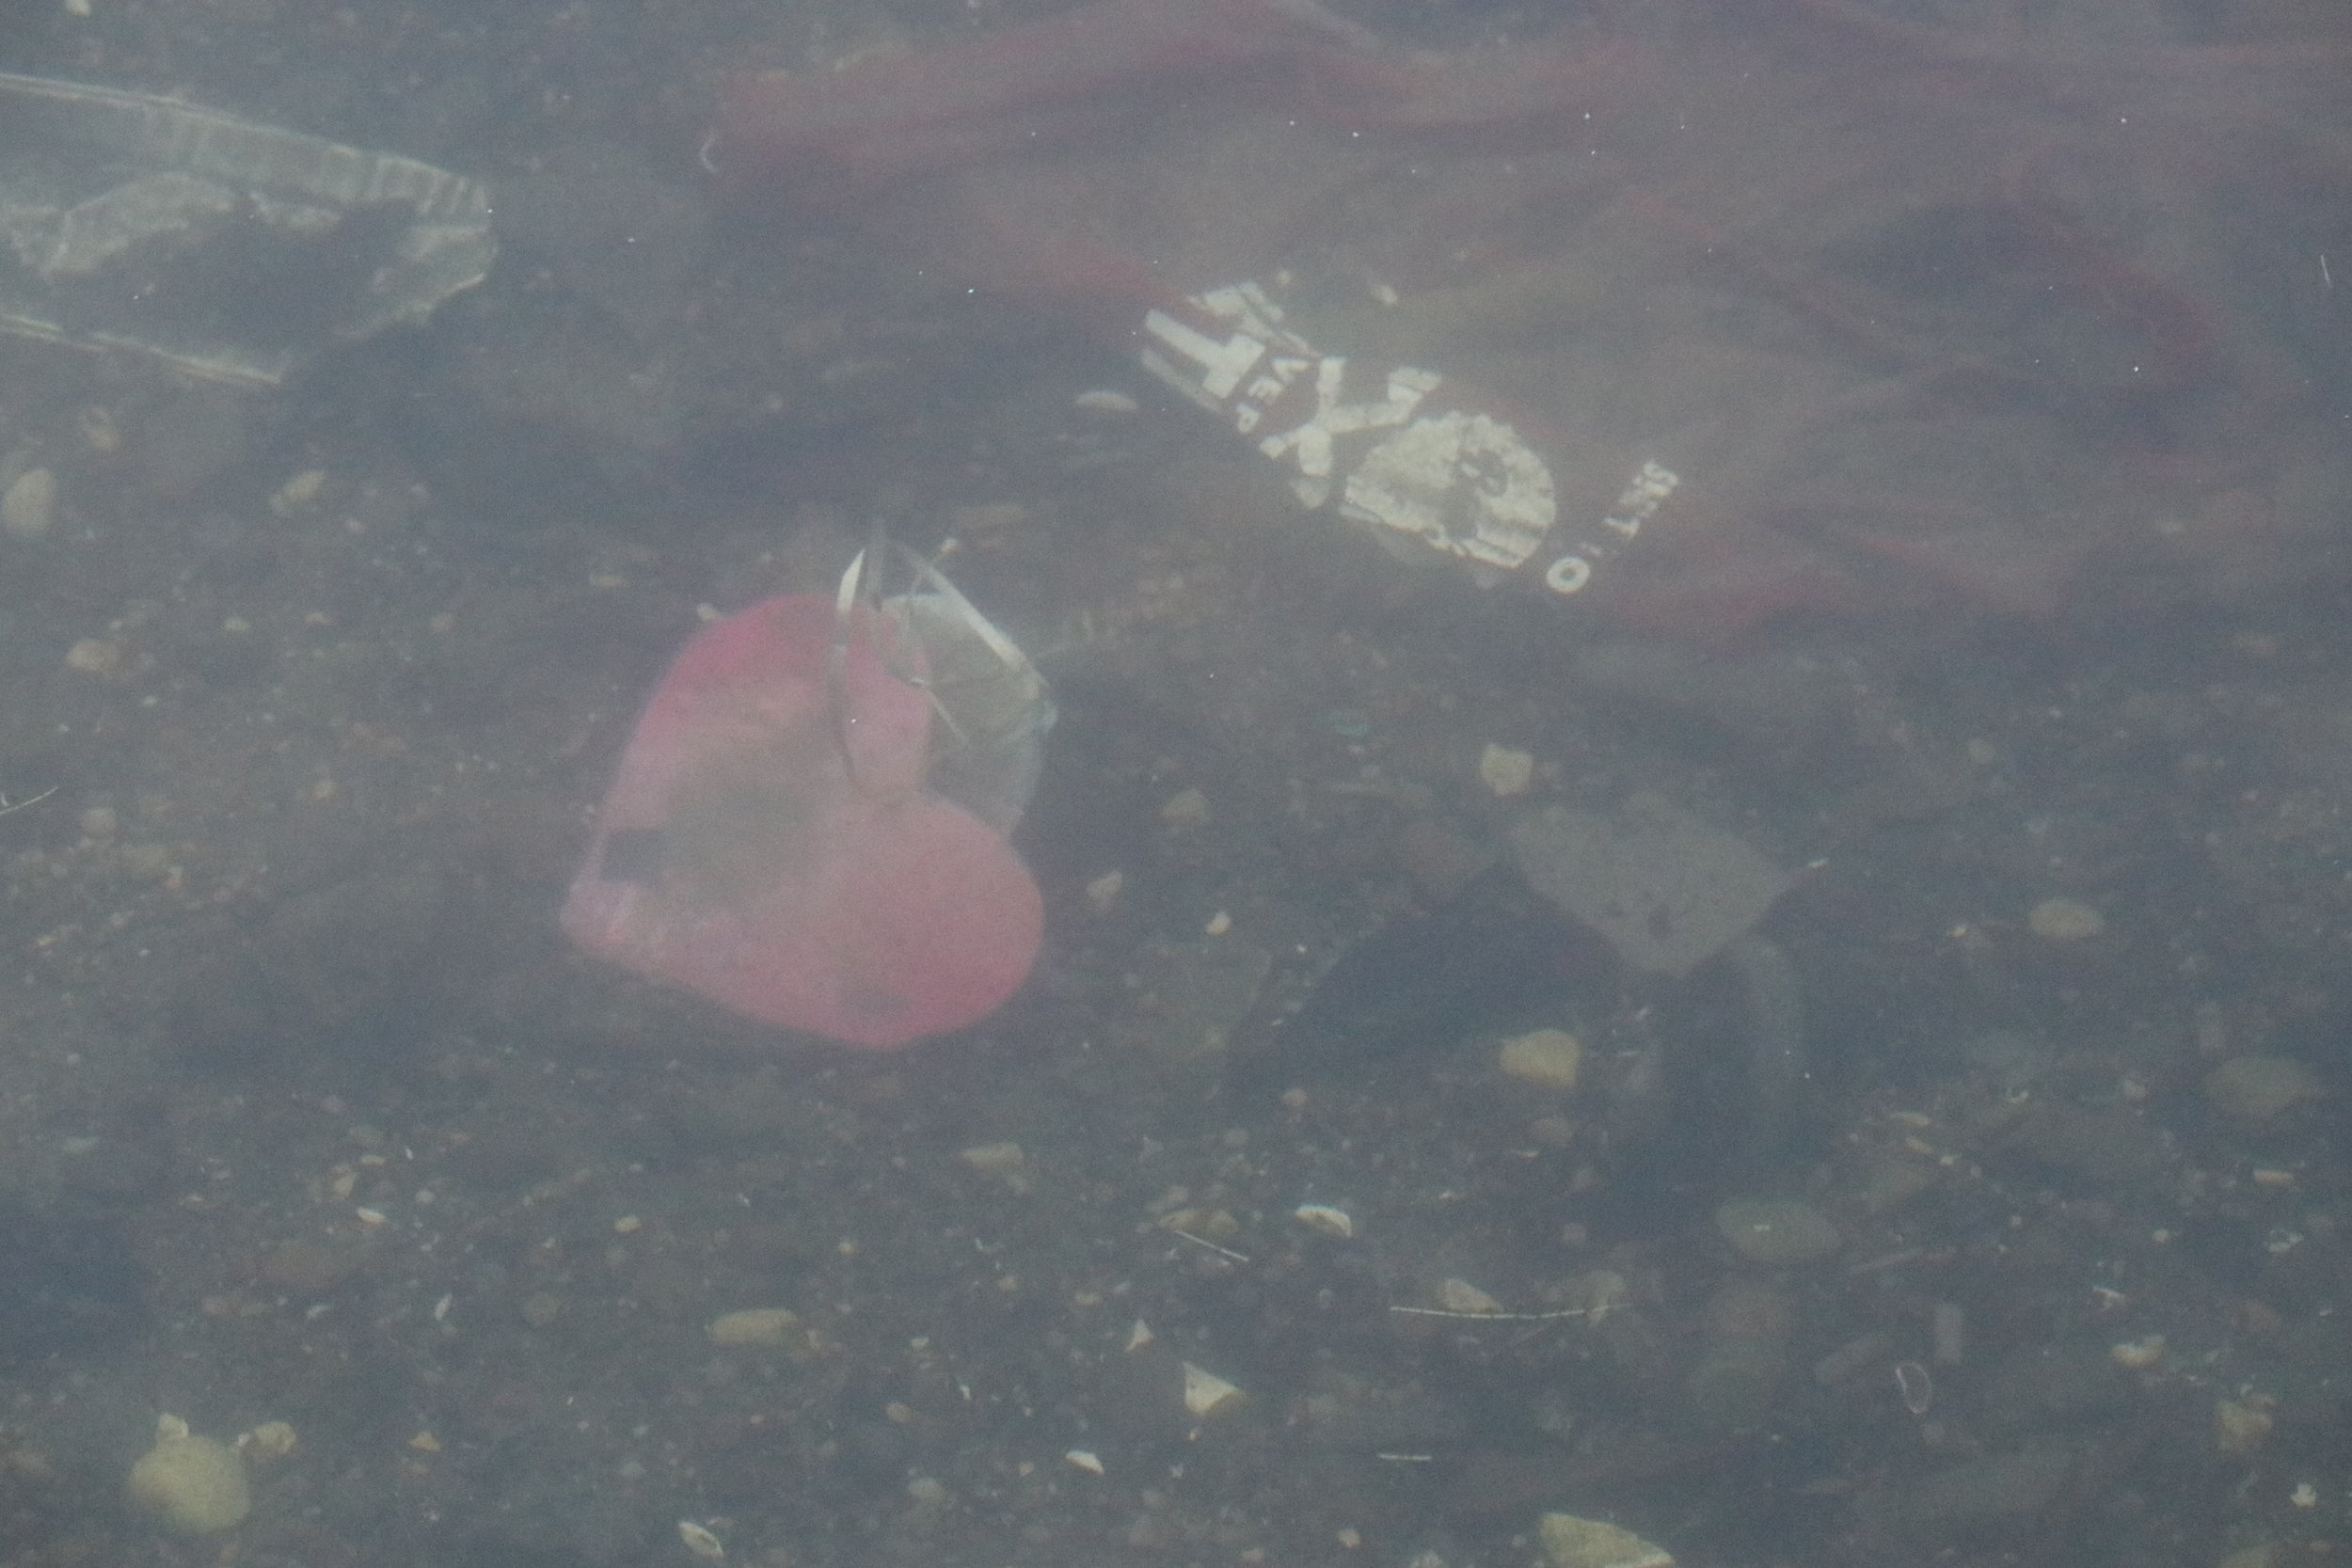 ©Erica Cirino. Close-up of trash (mostly plastic) next to mute swan.